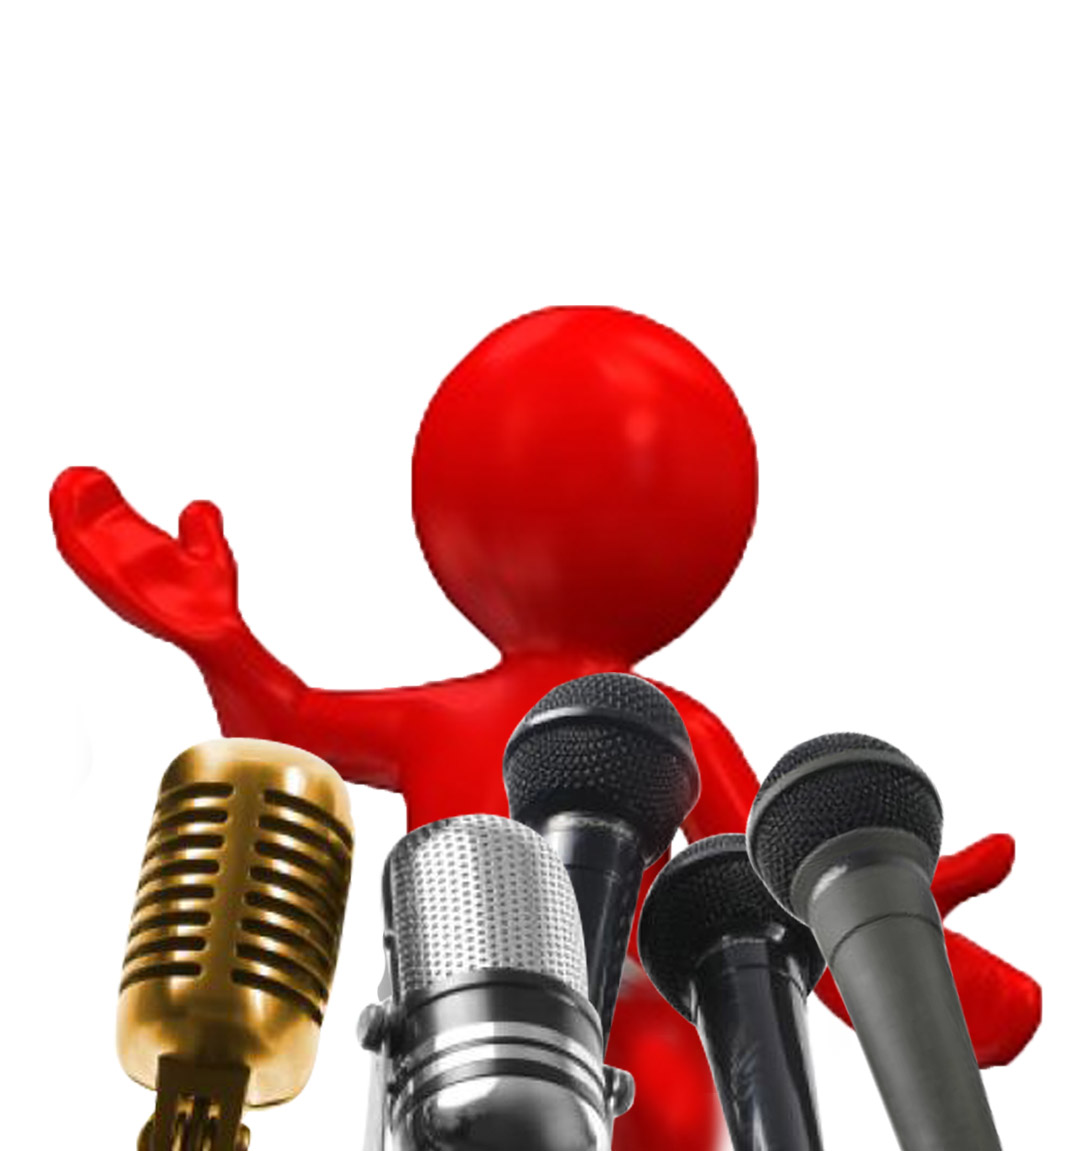 art of public speaking Most people fear public speaking more than death severely limiting opportunities to communicate their thoughts and ideas, while stifling their personal.